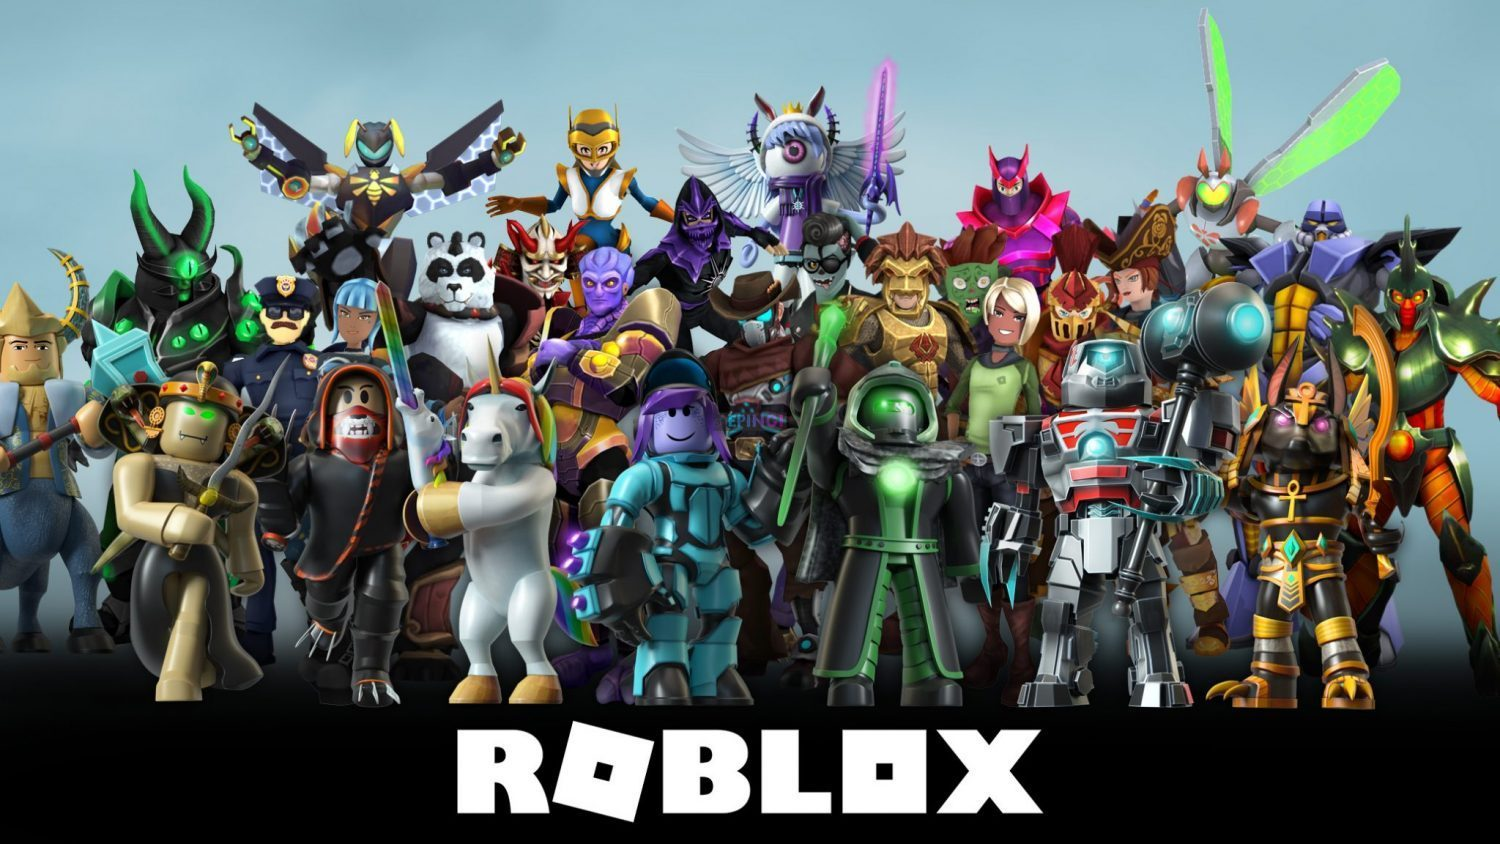 Robux Generator No Verification Required Roblox Free Robux Generator 2020 No Human No Survey Verification Working 100 Epingi